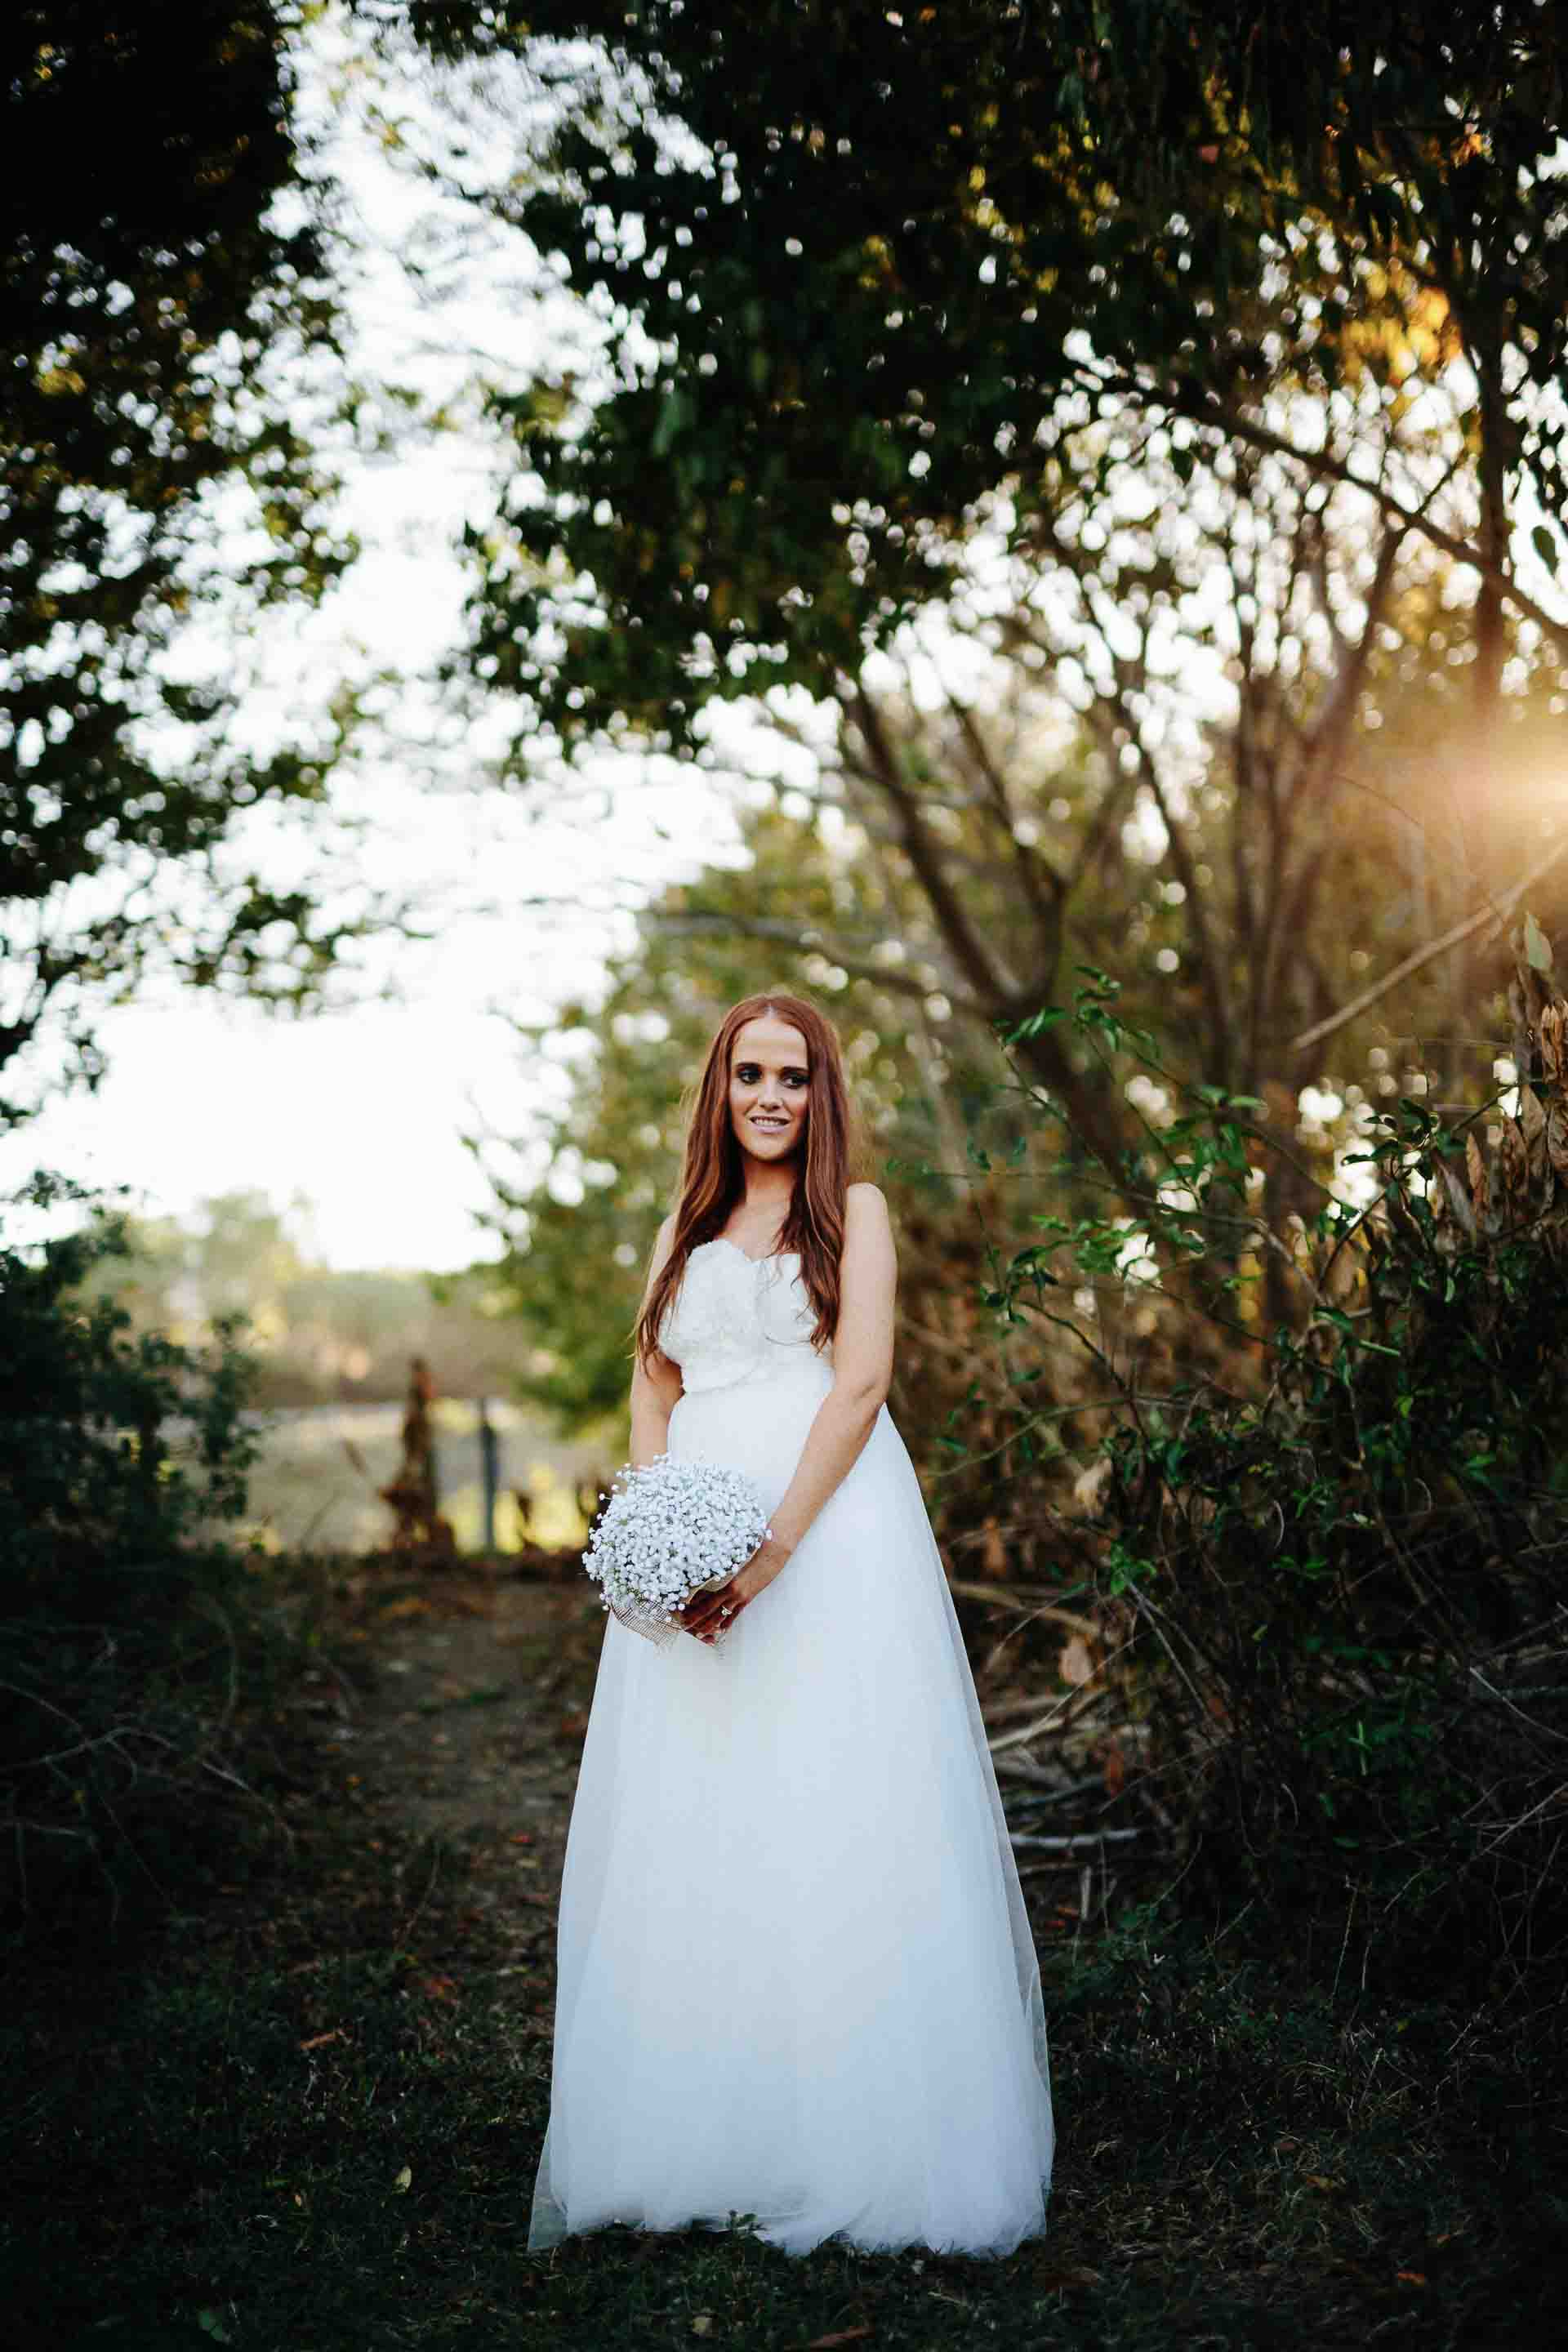 bride standing alone with sun behind trees in the background